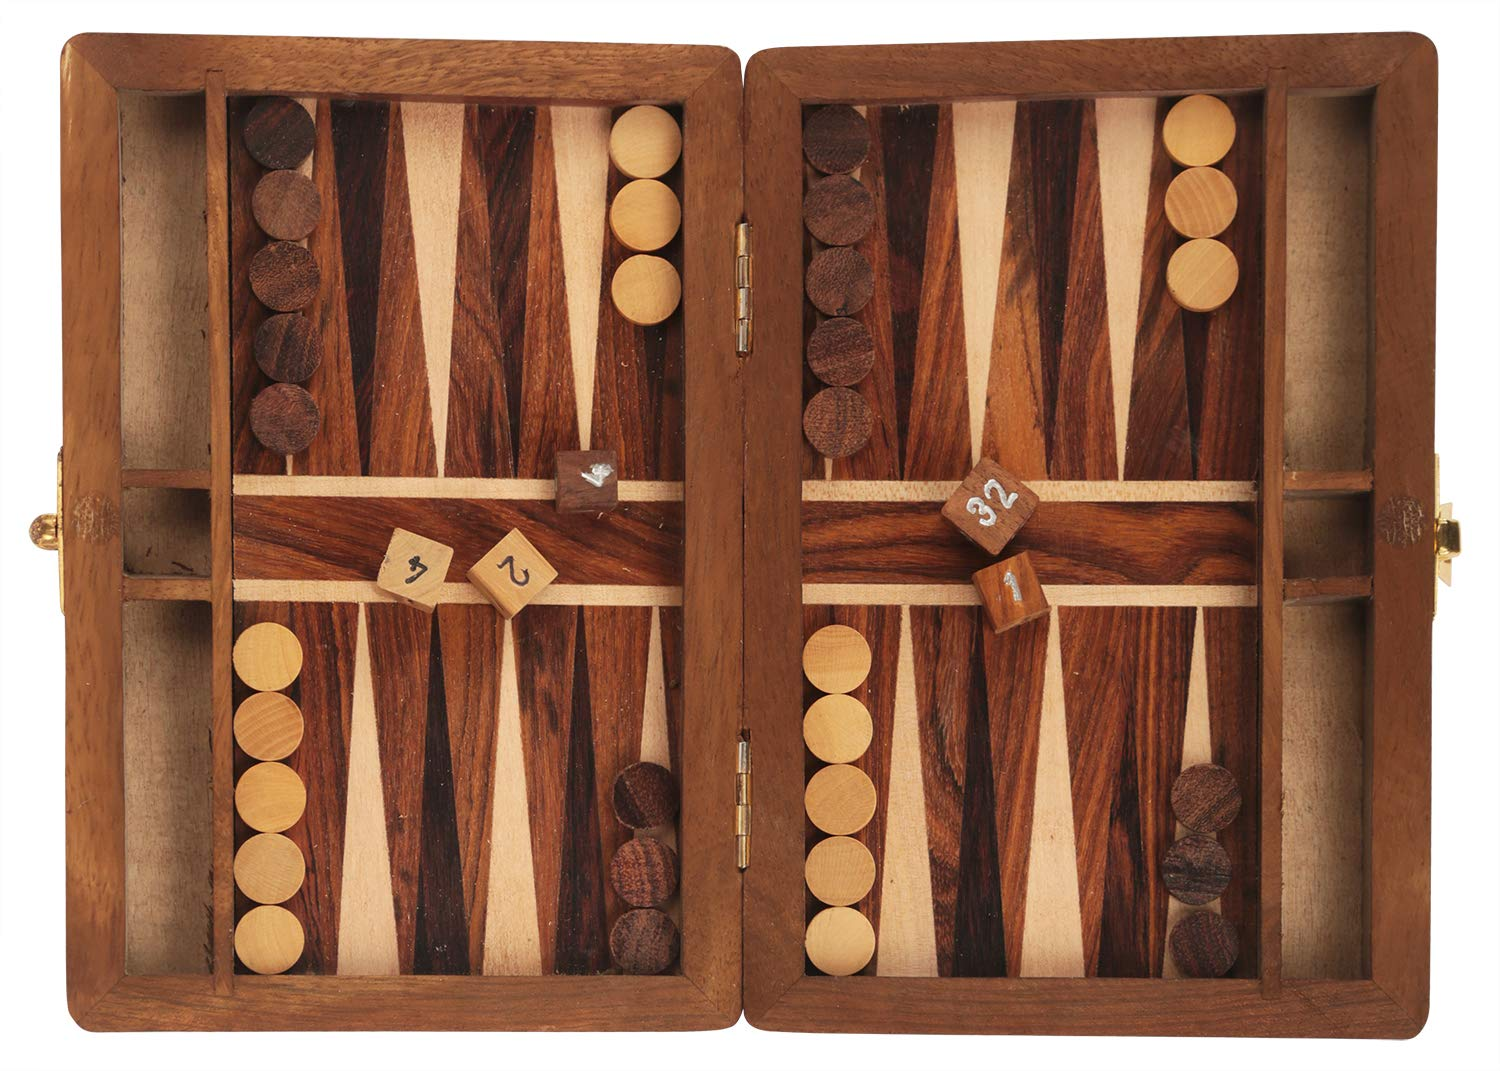 Backgammon https://amzn.to/2Pn9enP